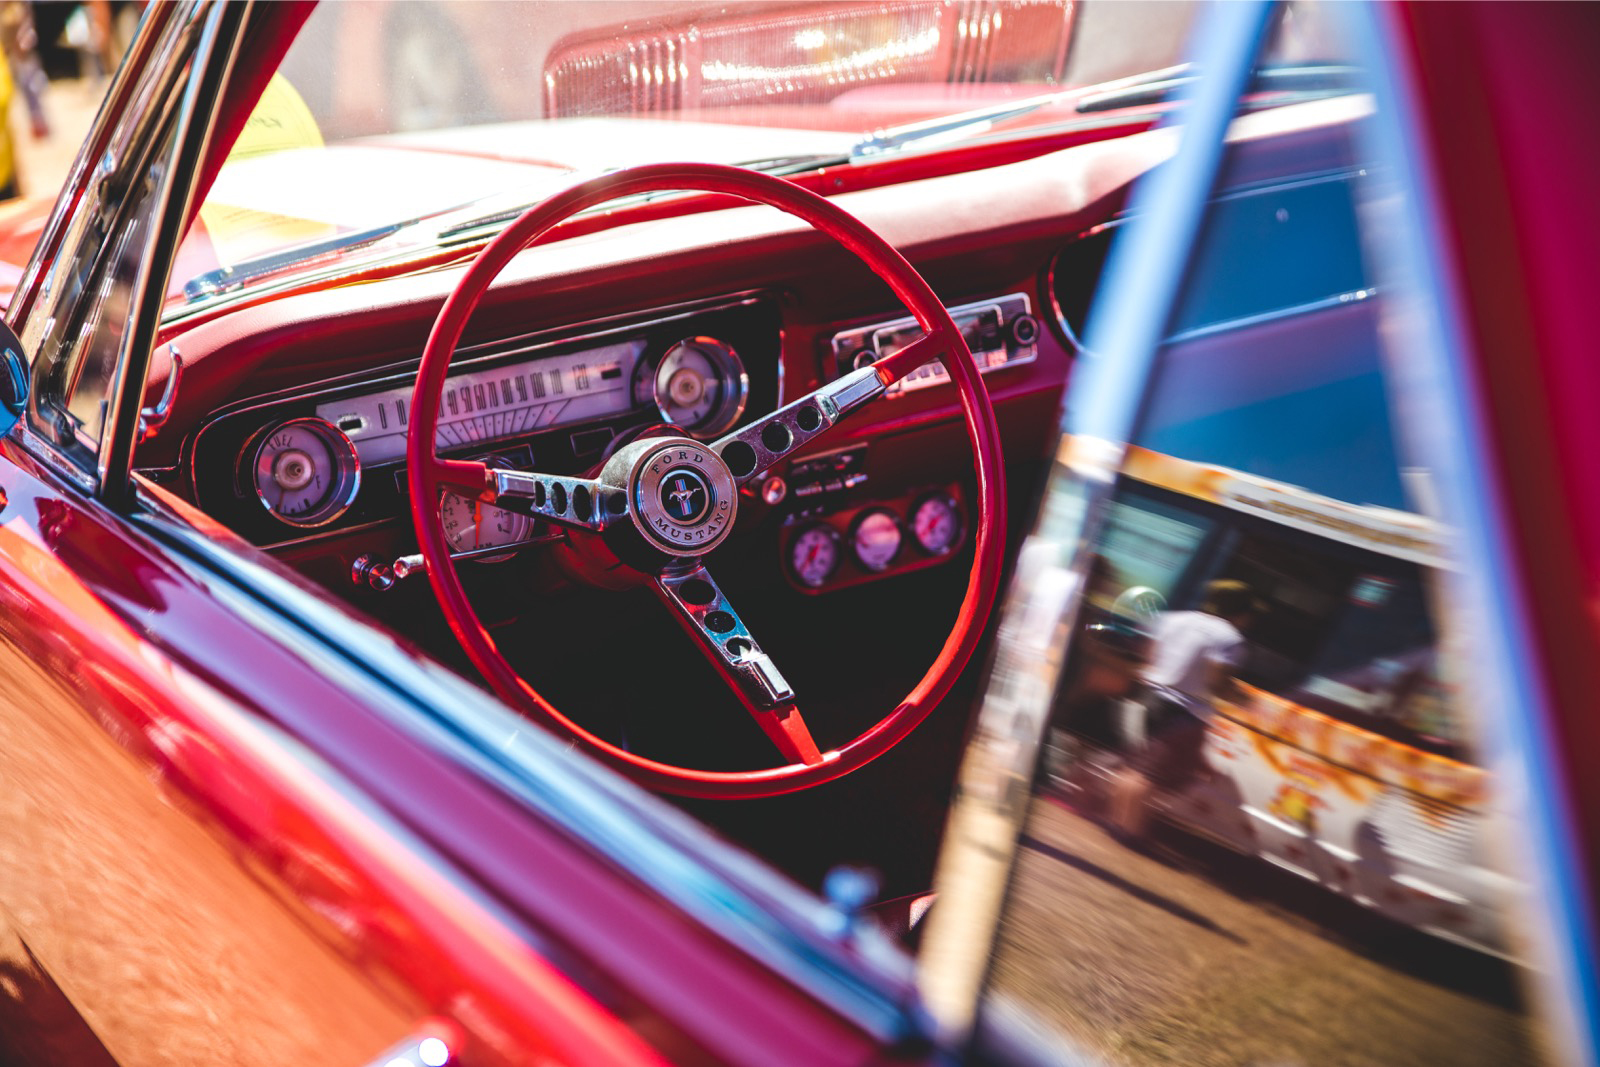 Interior view of a classic Ford Mustang